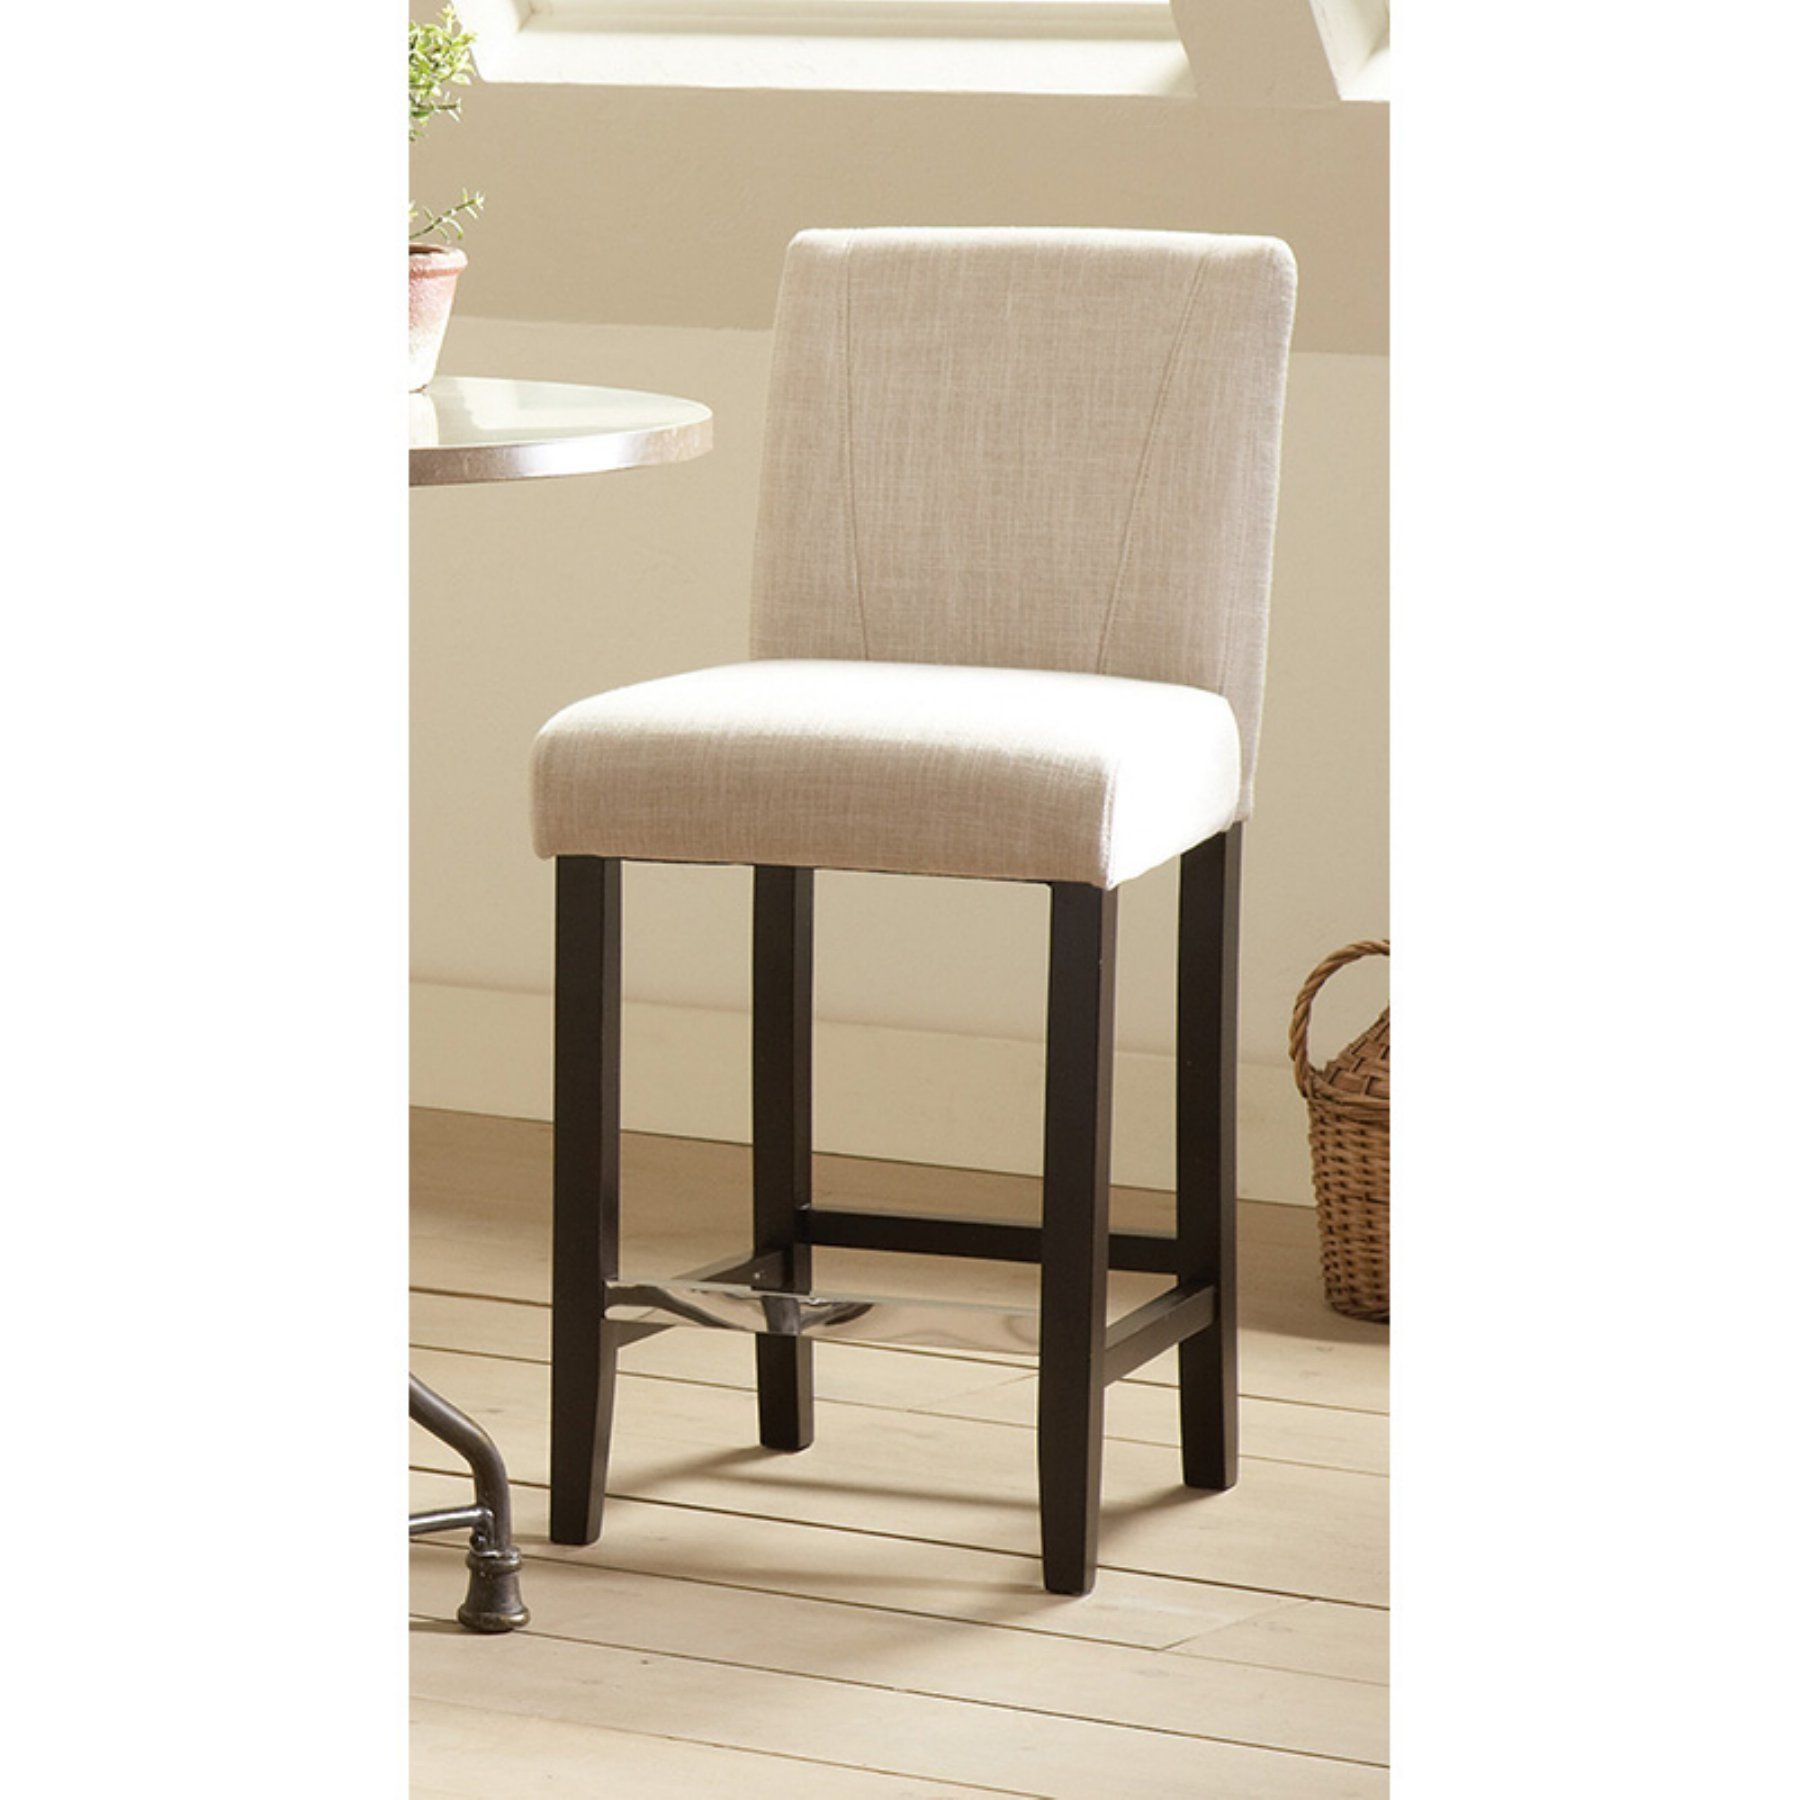 Coaster Furniture 39 In. Upholstered Parson Counter Height Stool   Set Of 2    COA3135